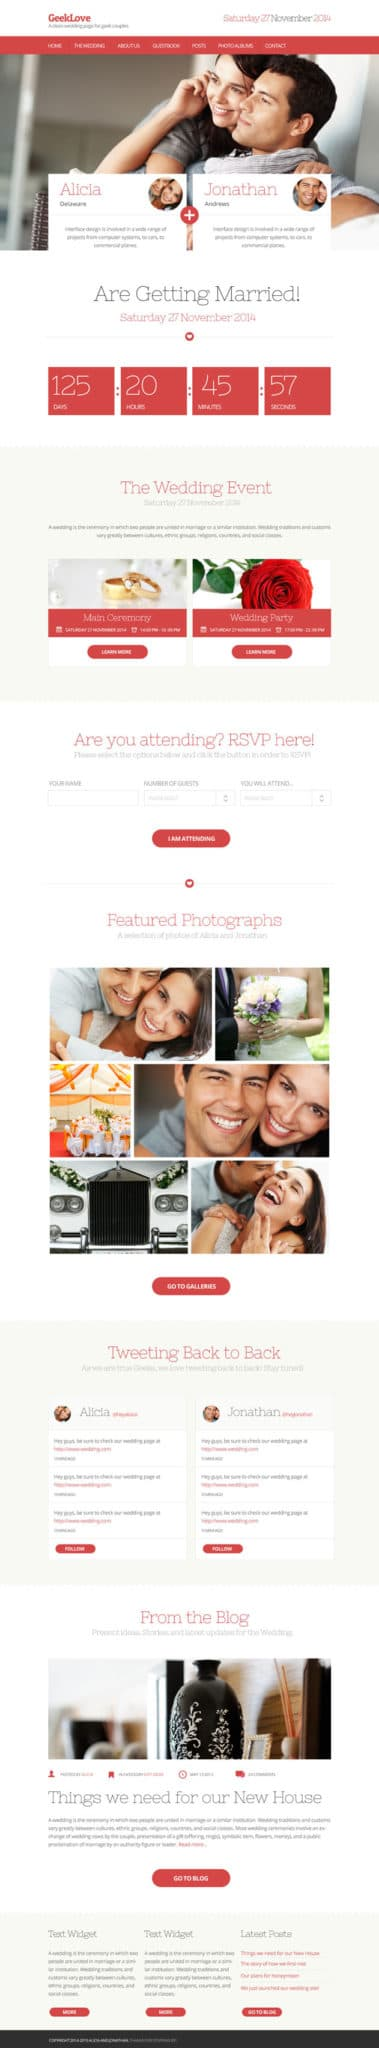 geeklove-responsive-wedding-theme